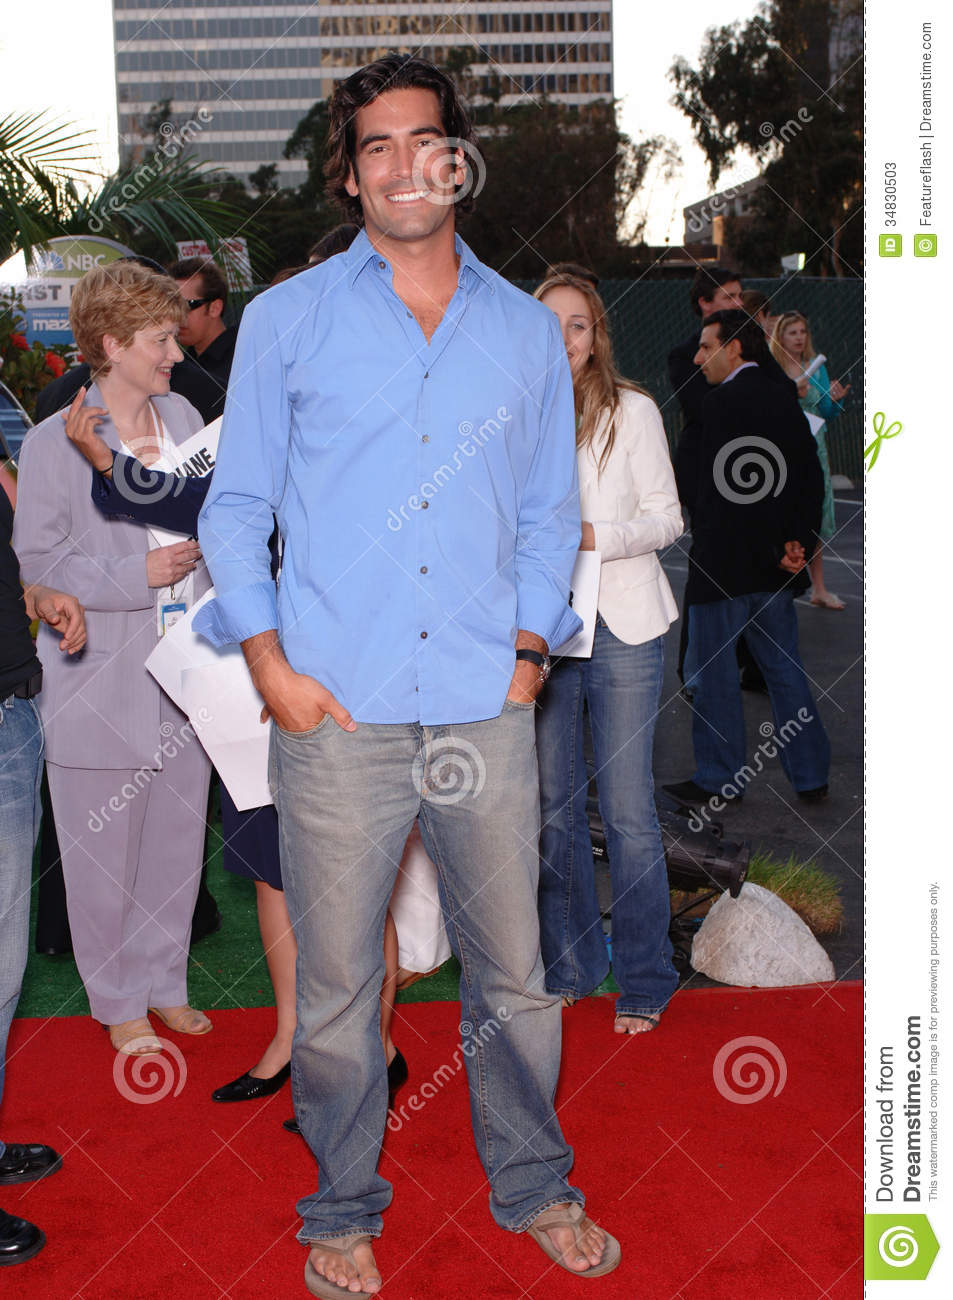 Stock Photos Carter Oosterhouse Star Tv Series Three Wishes Party Los Angeles To Launch New Season Nbc Tv July Los Angeles Ca Image34830503 on pennington house plan